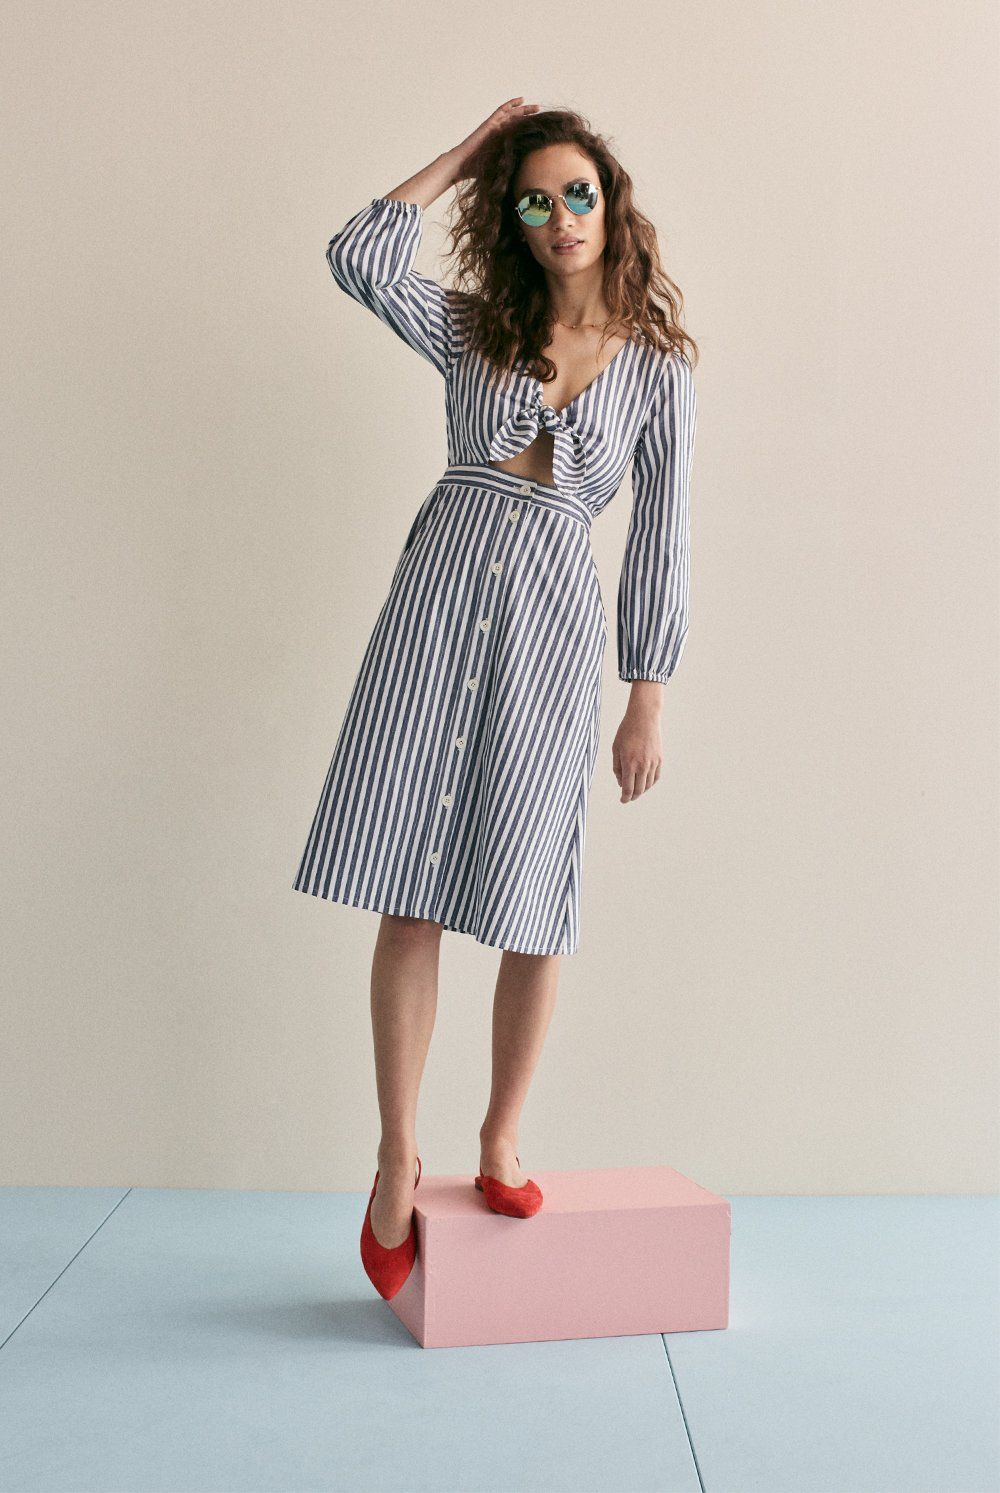 39488bc3a474 madewell shimmer stripe cutout midi dress worn with the ava slingback flat  + fest aviator sunglasses.